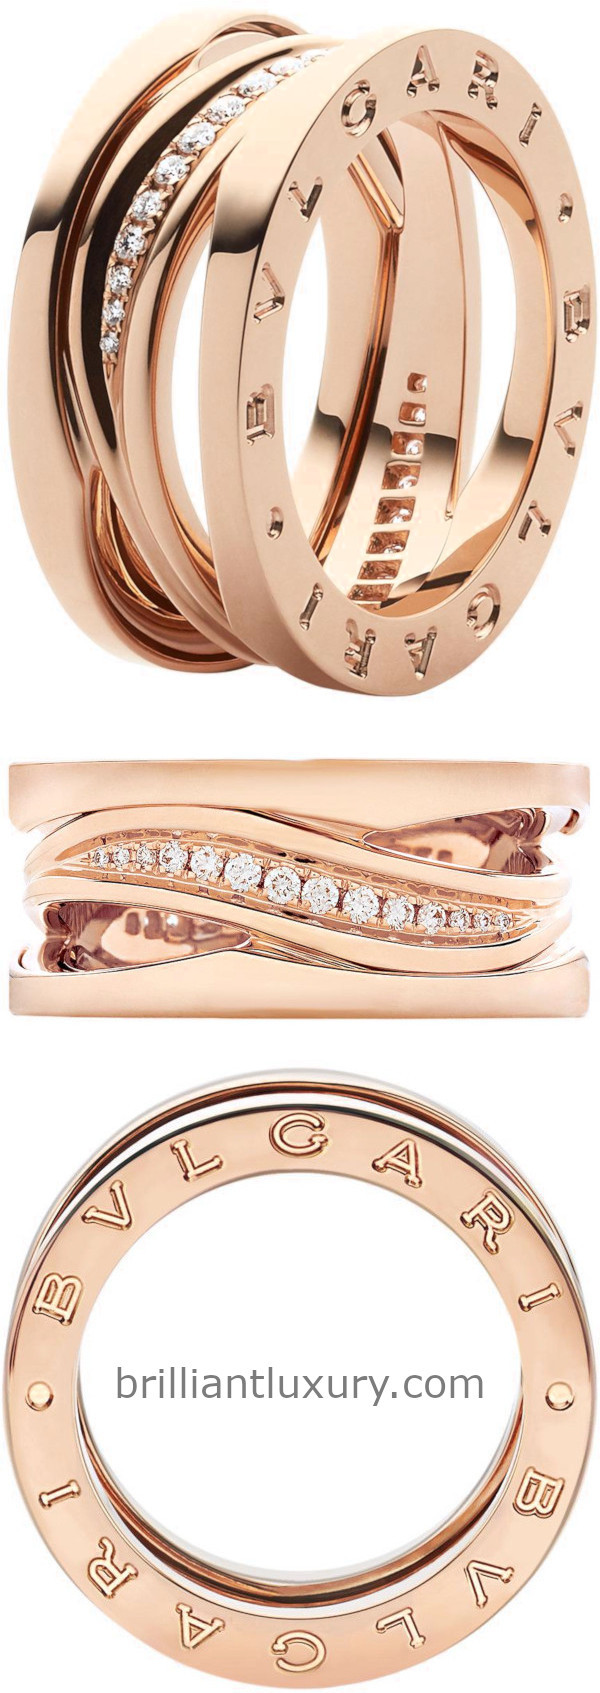 Bvlgari B.Zero1 Design Legend ring in 18kt rose gold set with pavé diamonds on the spiral